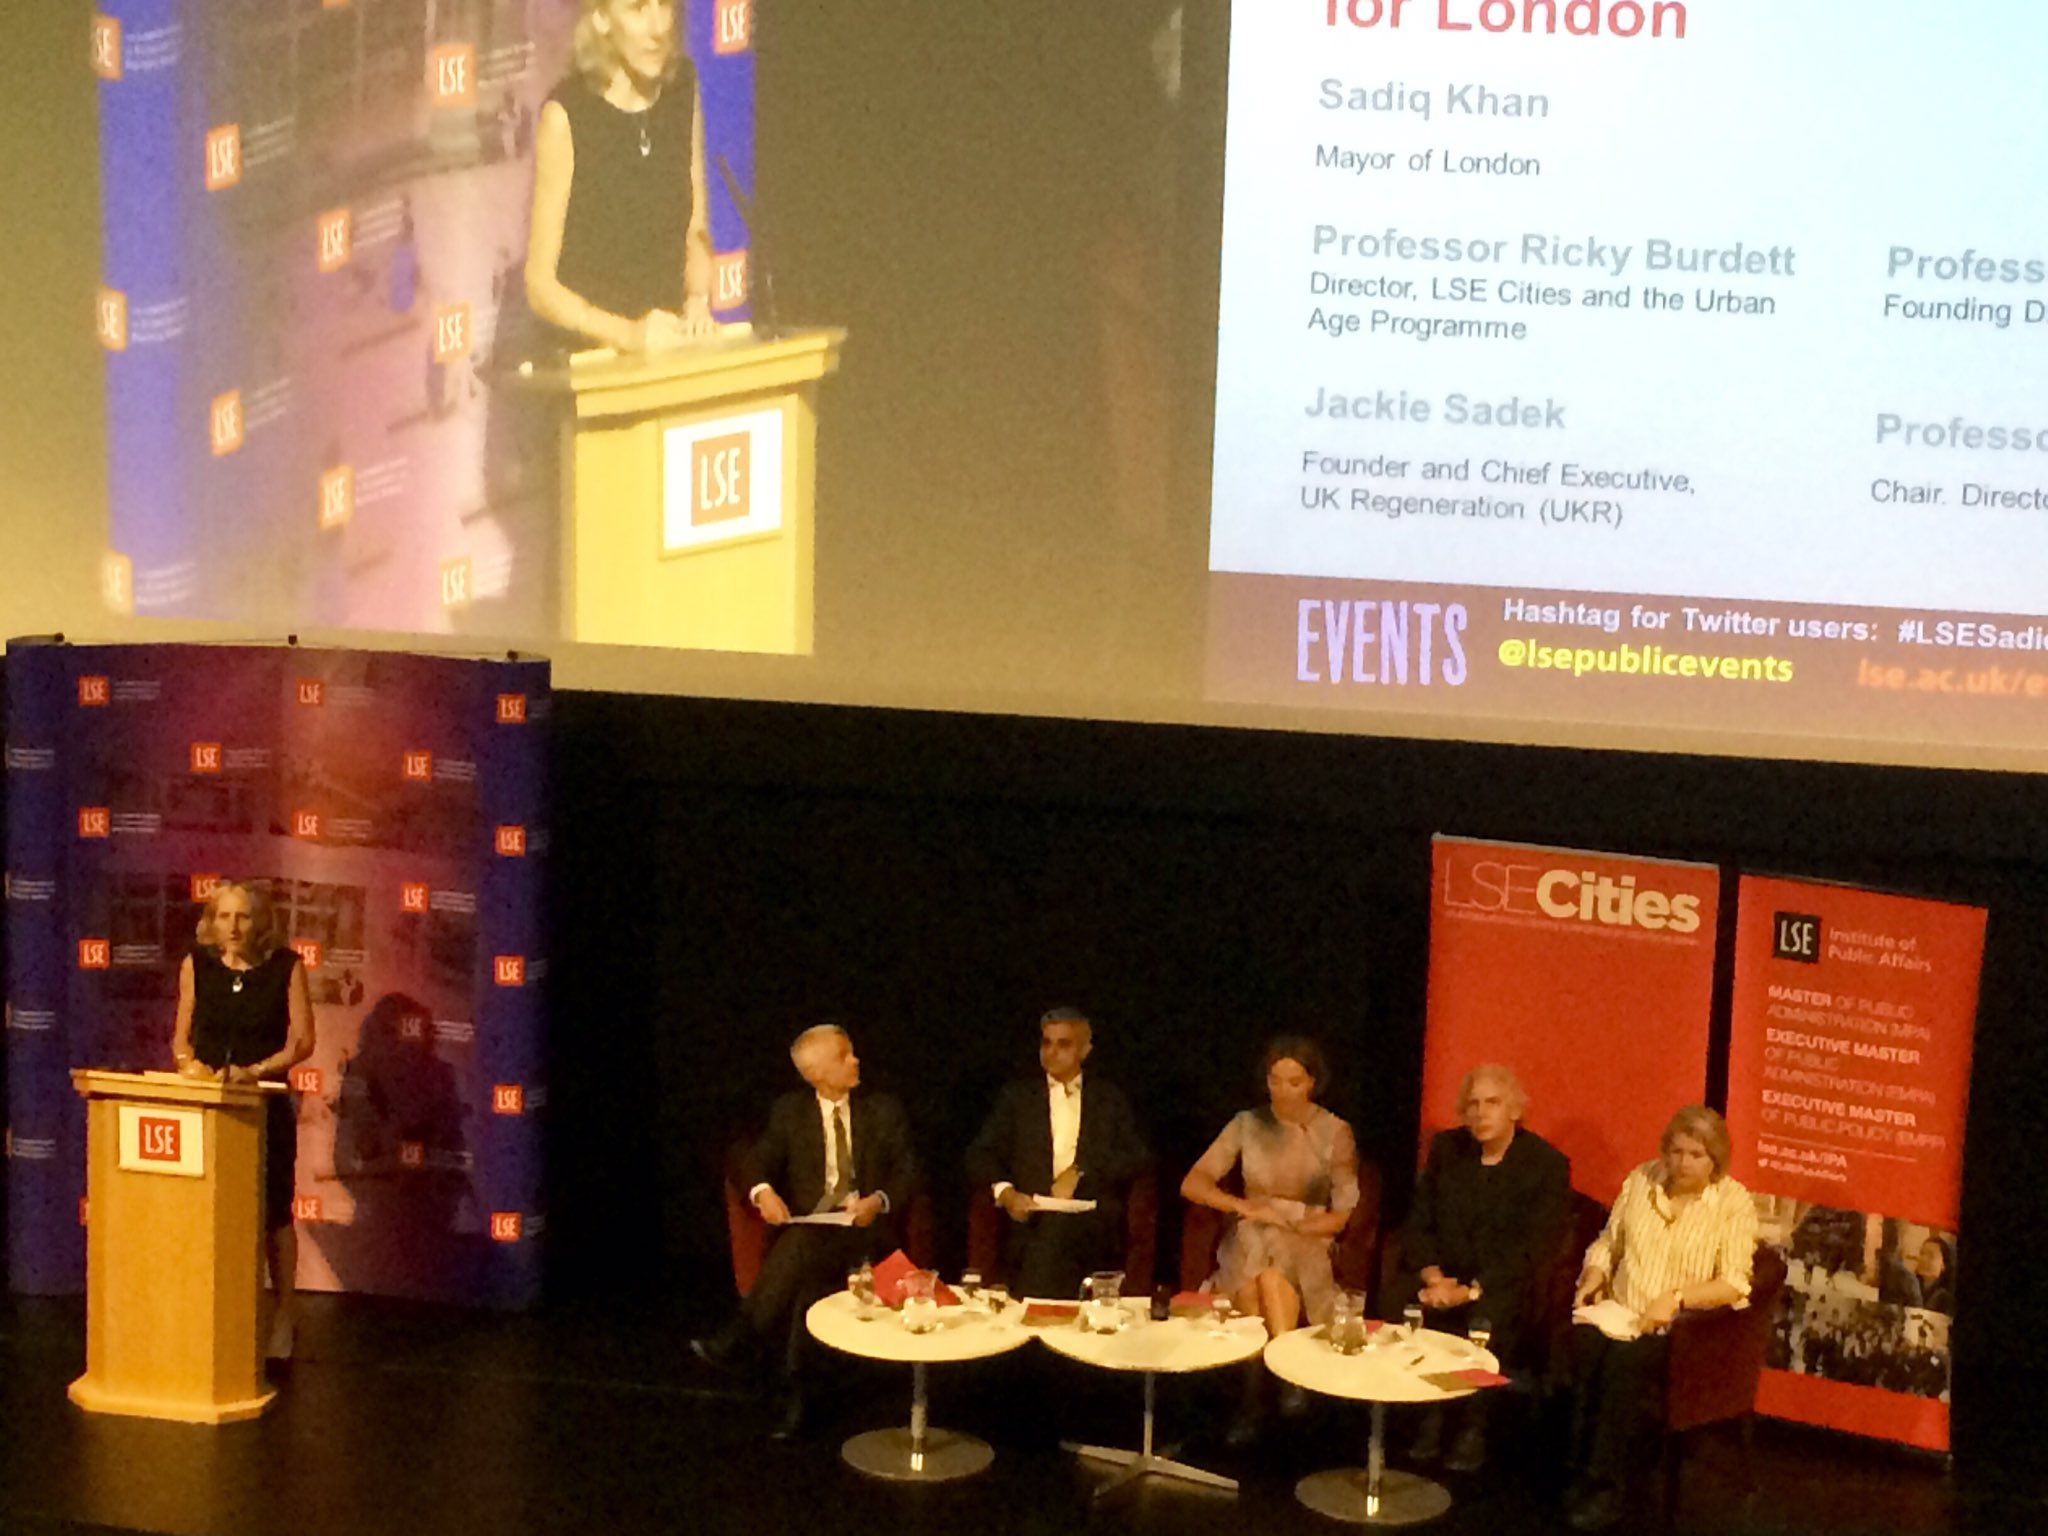 Good Growth by Design - A Vision for London public lecture with London Mayor, @SadiqKhan #LSESadiq https://t.co/m5dH1piuE4